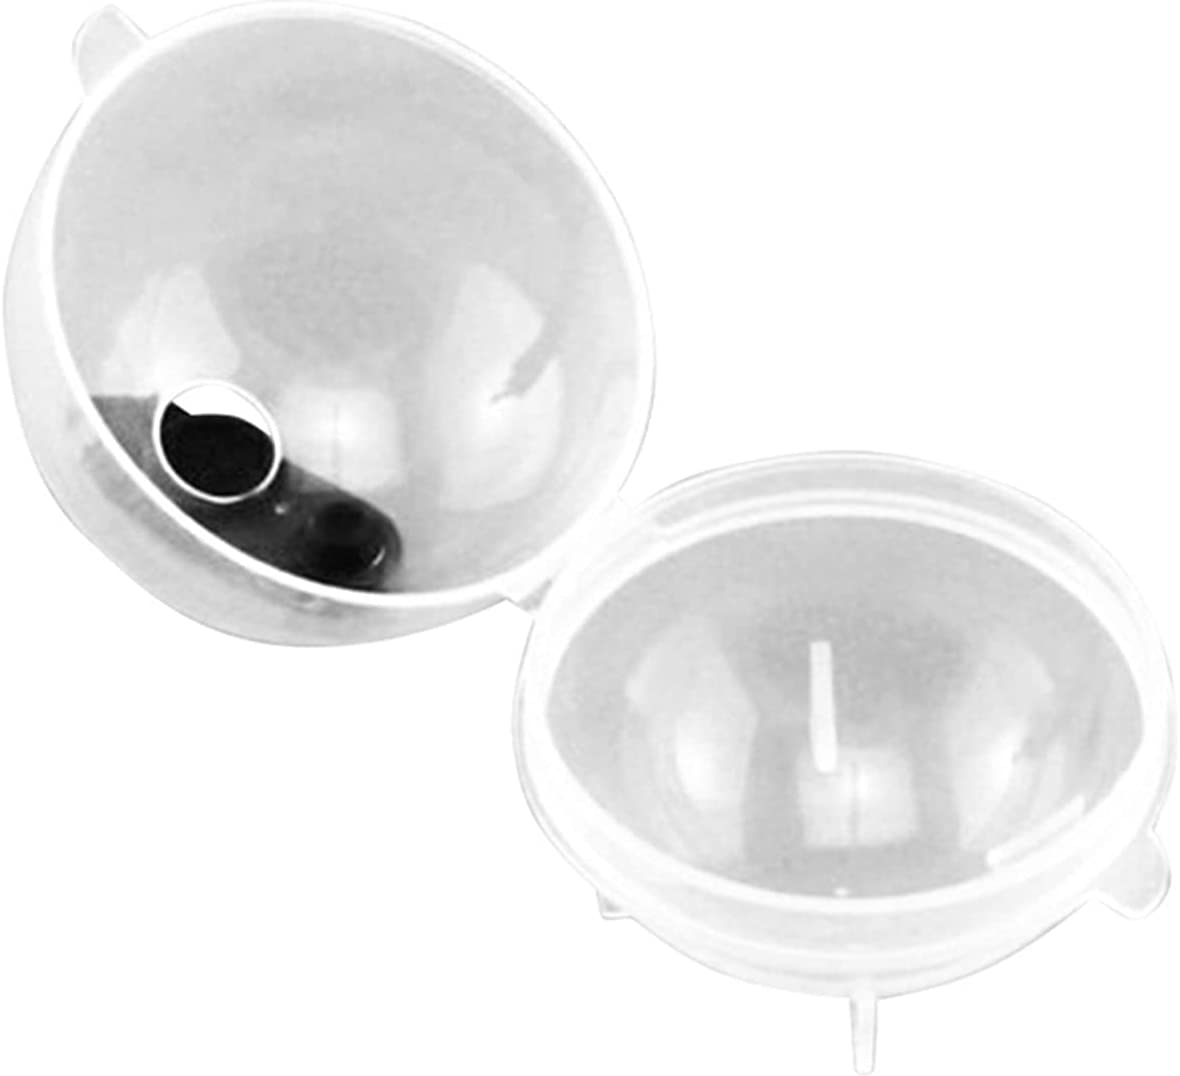 Ball Ice Molds Sphere Round Cube Makers Sale special price and Our shop OFFers the best service Home Pa Bar